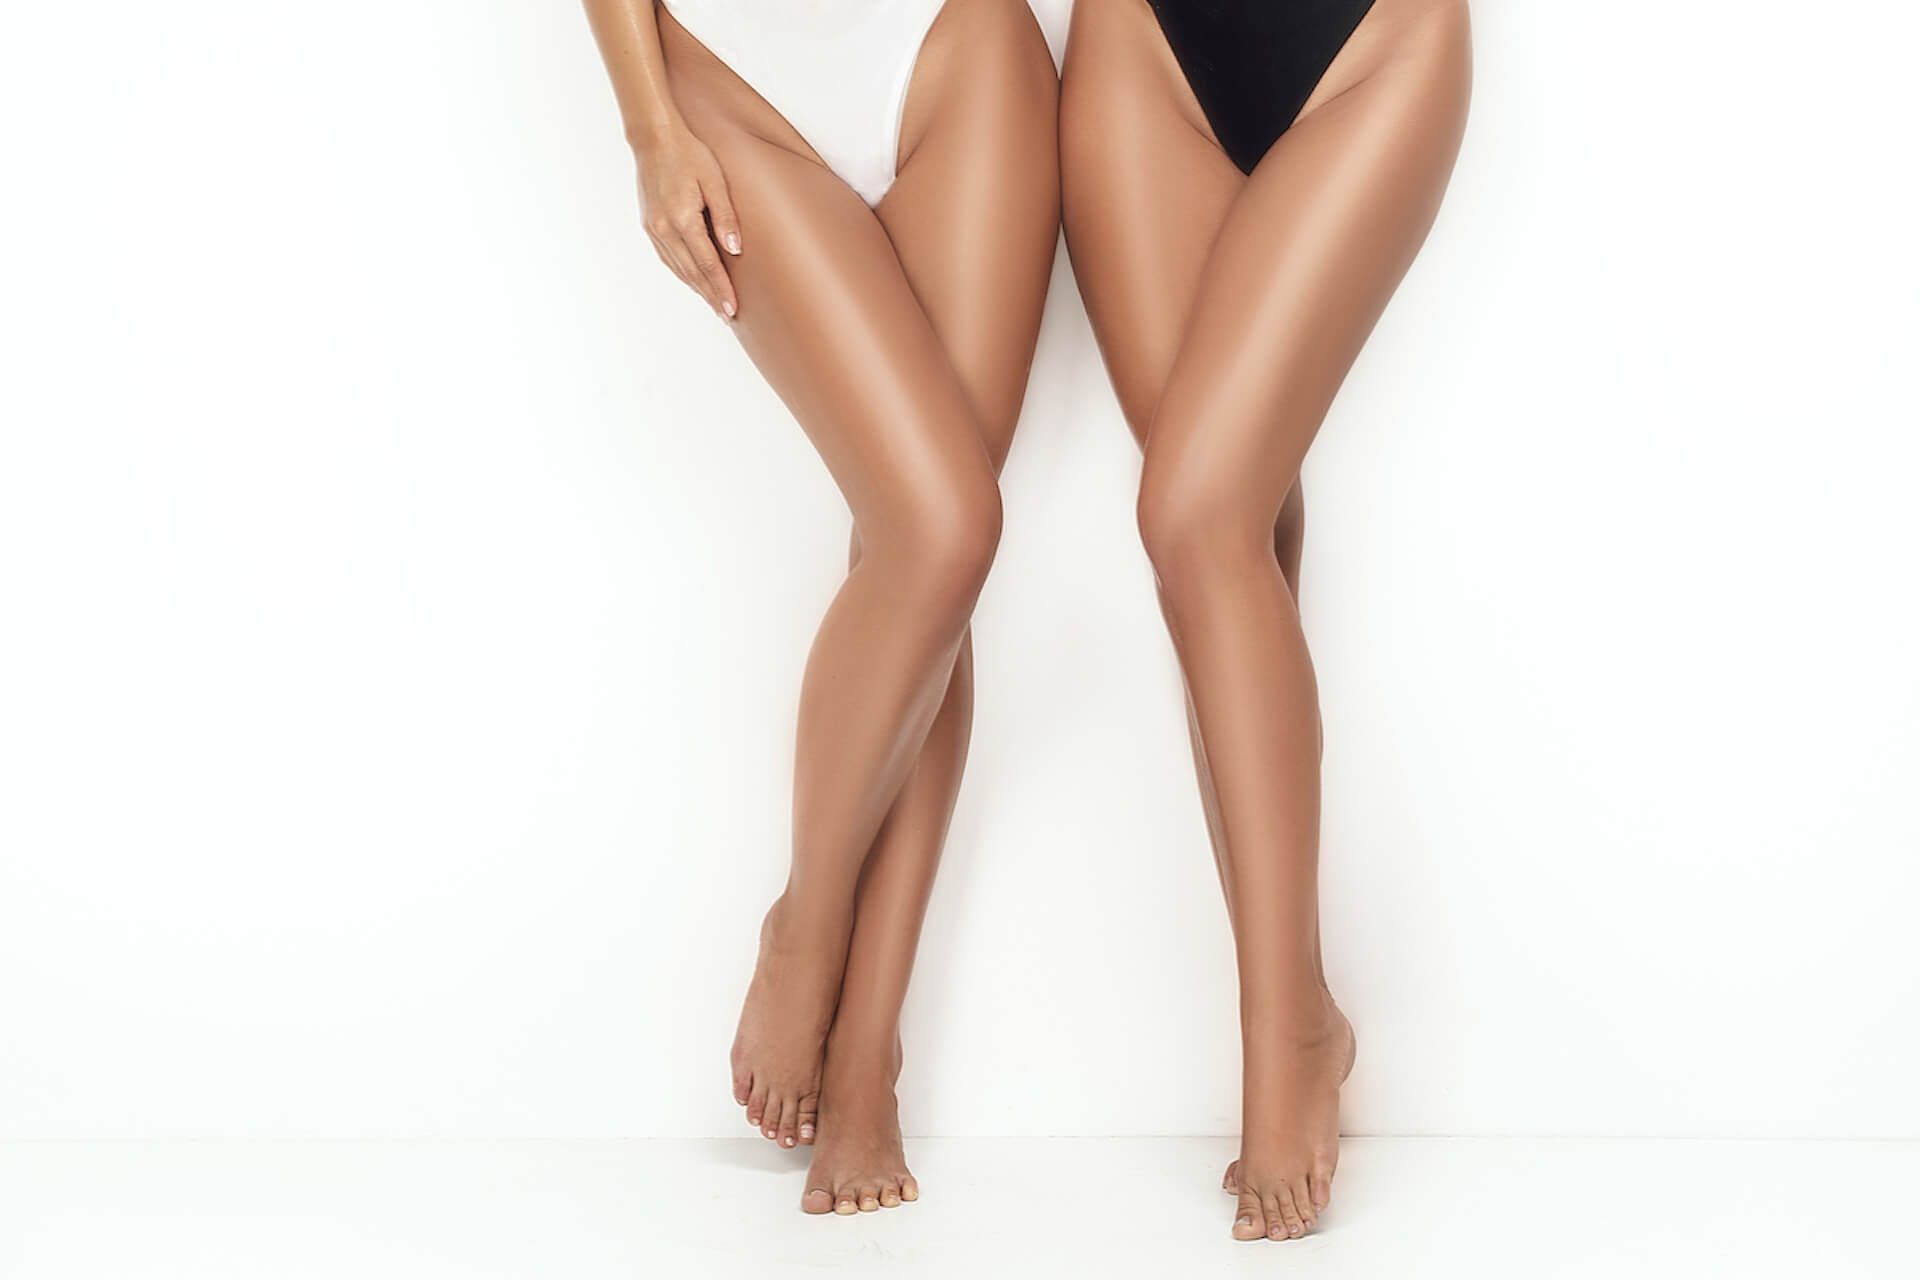 Laser-Hair-Removal-London-PHI-Clinic-1920-x-1280.